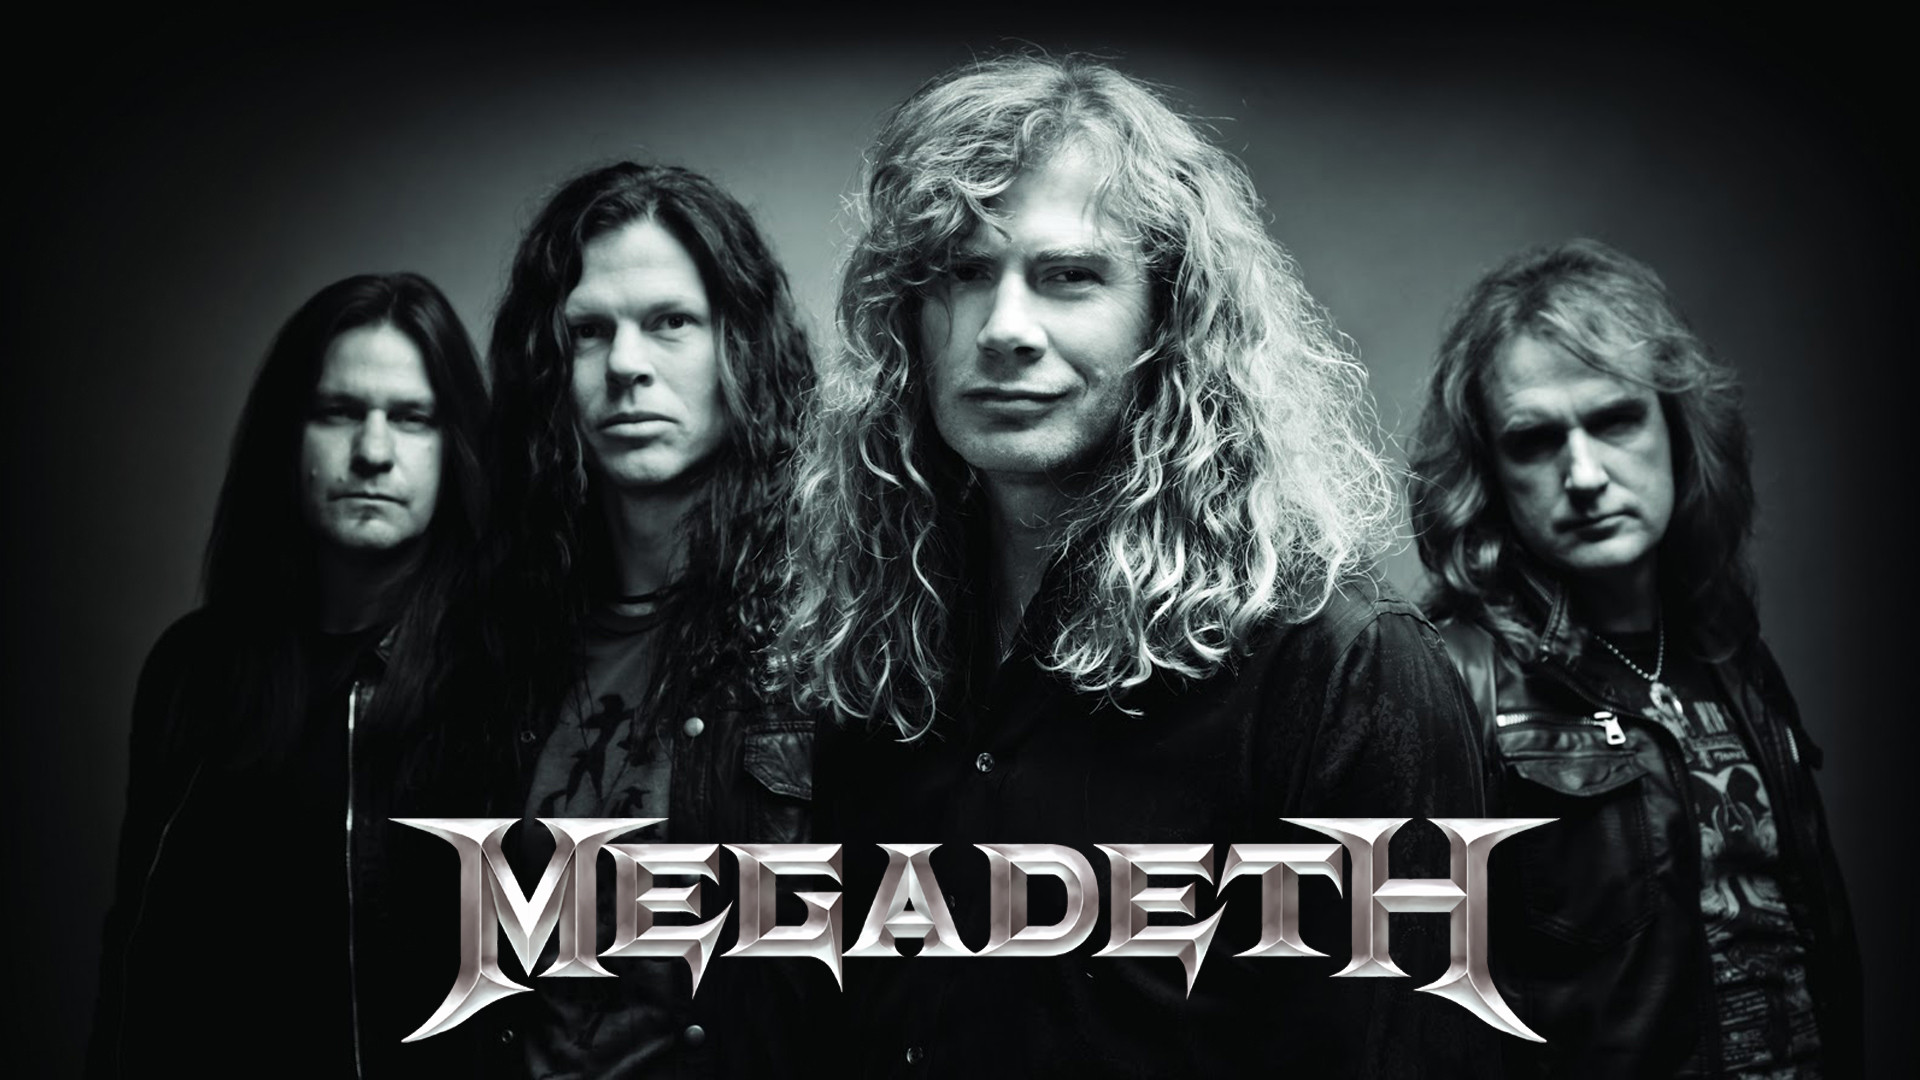 Res: 1920x1080, Megadeth bands groups heavy metal thrash hard rock Dave Mustaine wallpaper  |  | 25126 | WallpaperUP